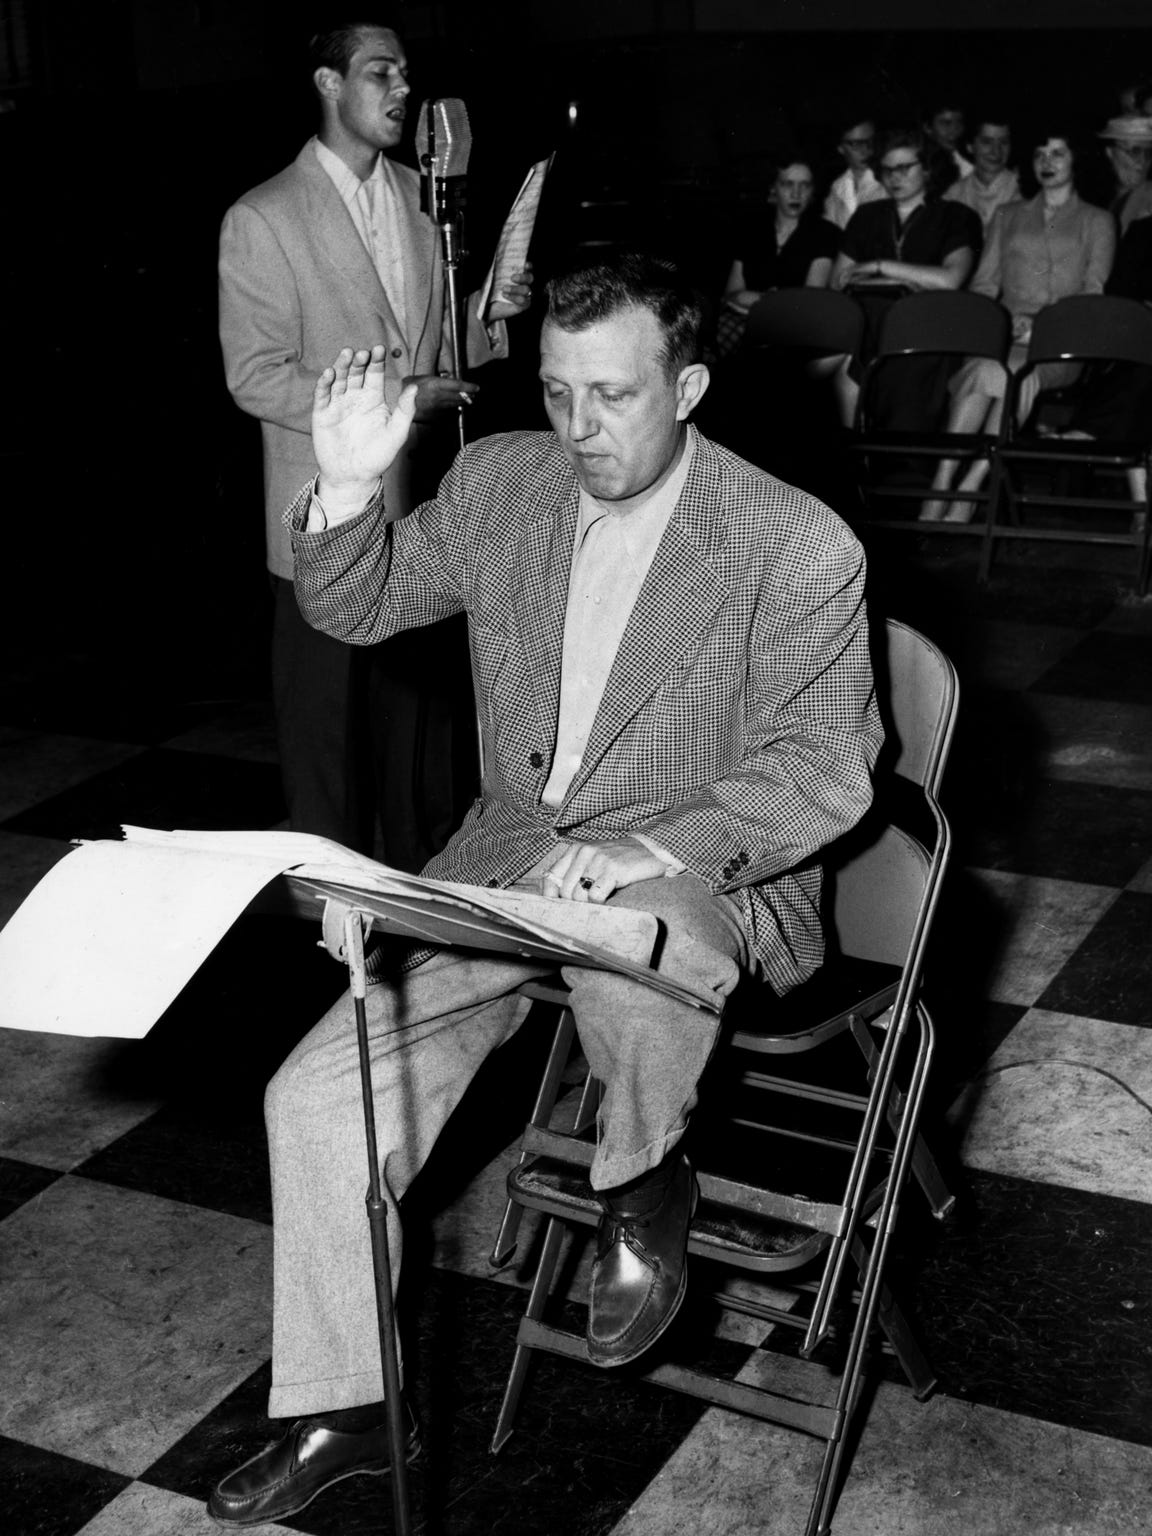 Owen Bradley, front, leads a singer in the studio in 1957, a year after he knocks out a floor of an old house and brings the first music enterprise to what would become Music Row.